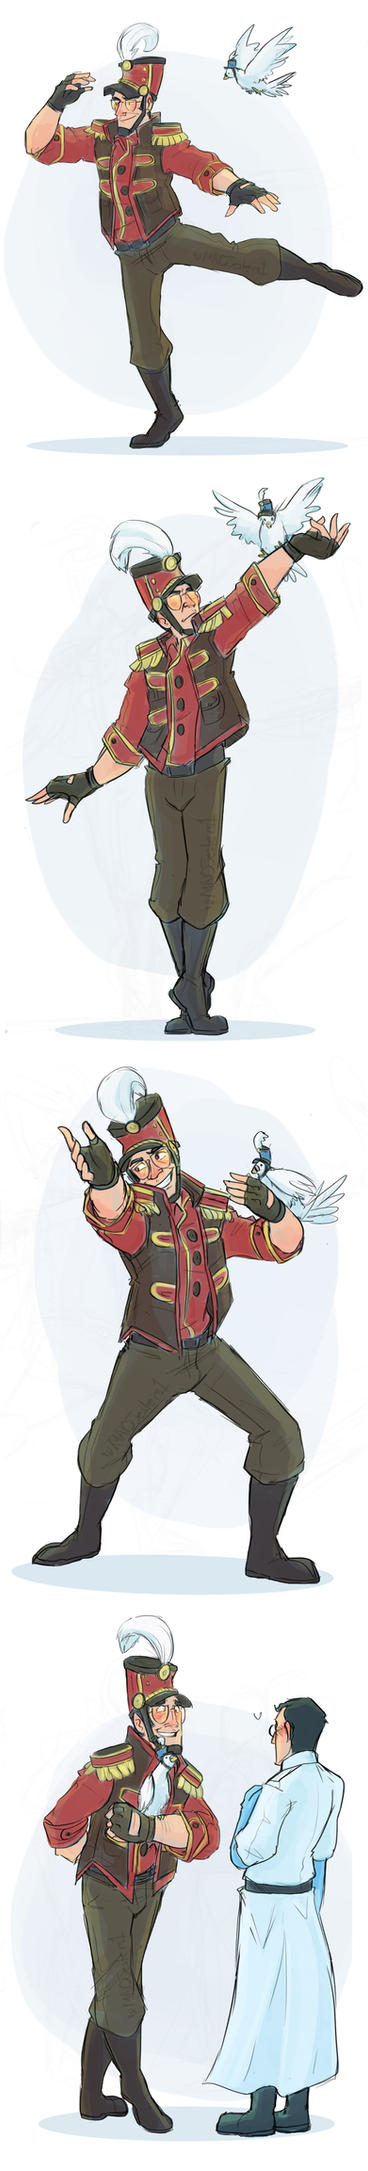 TF2- The Nutcracker Dance 2 by MadJesters1